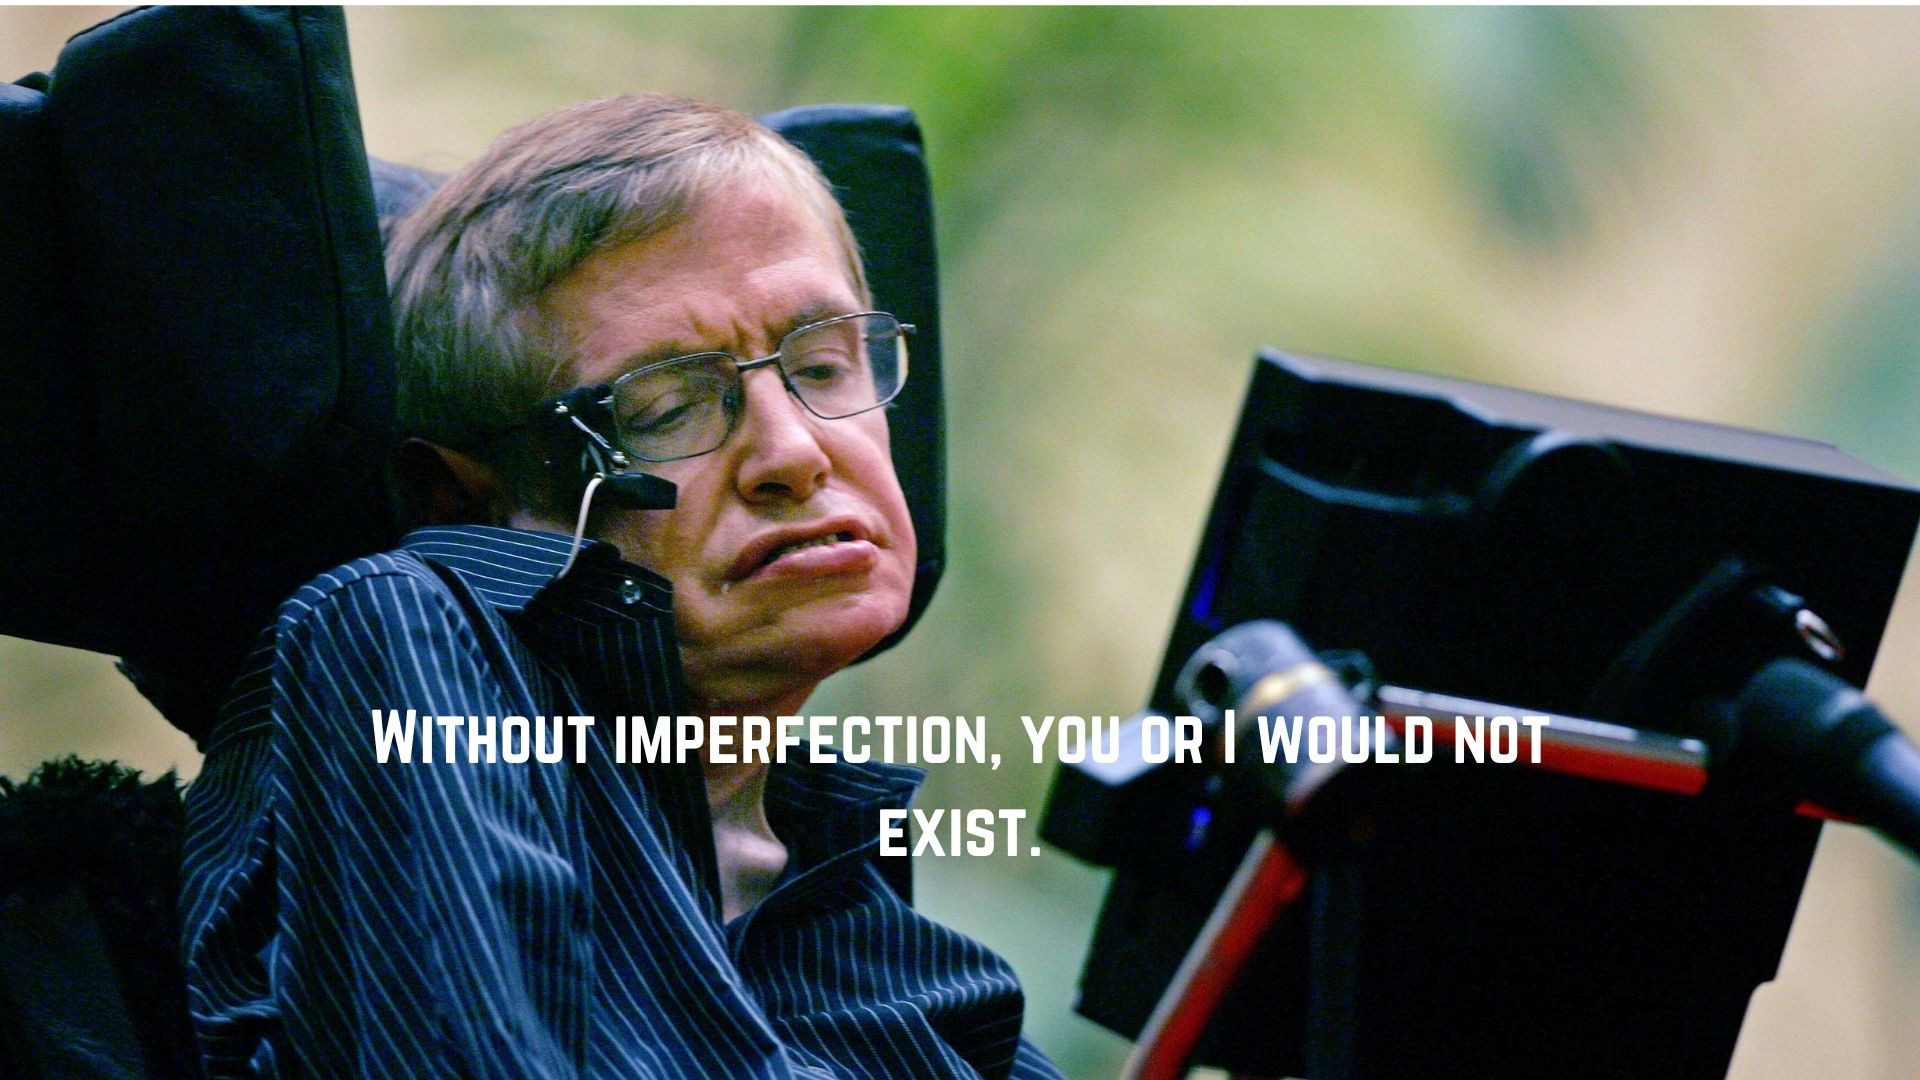 Without imperfection, you or I would not exist.